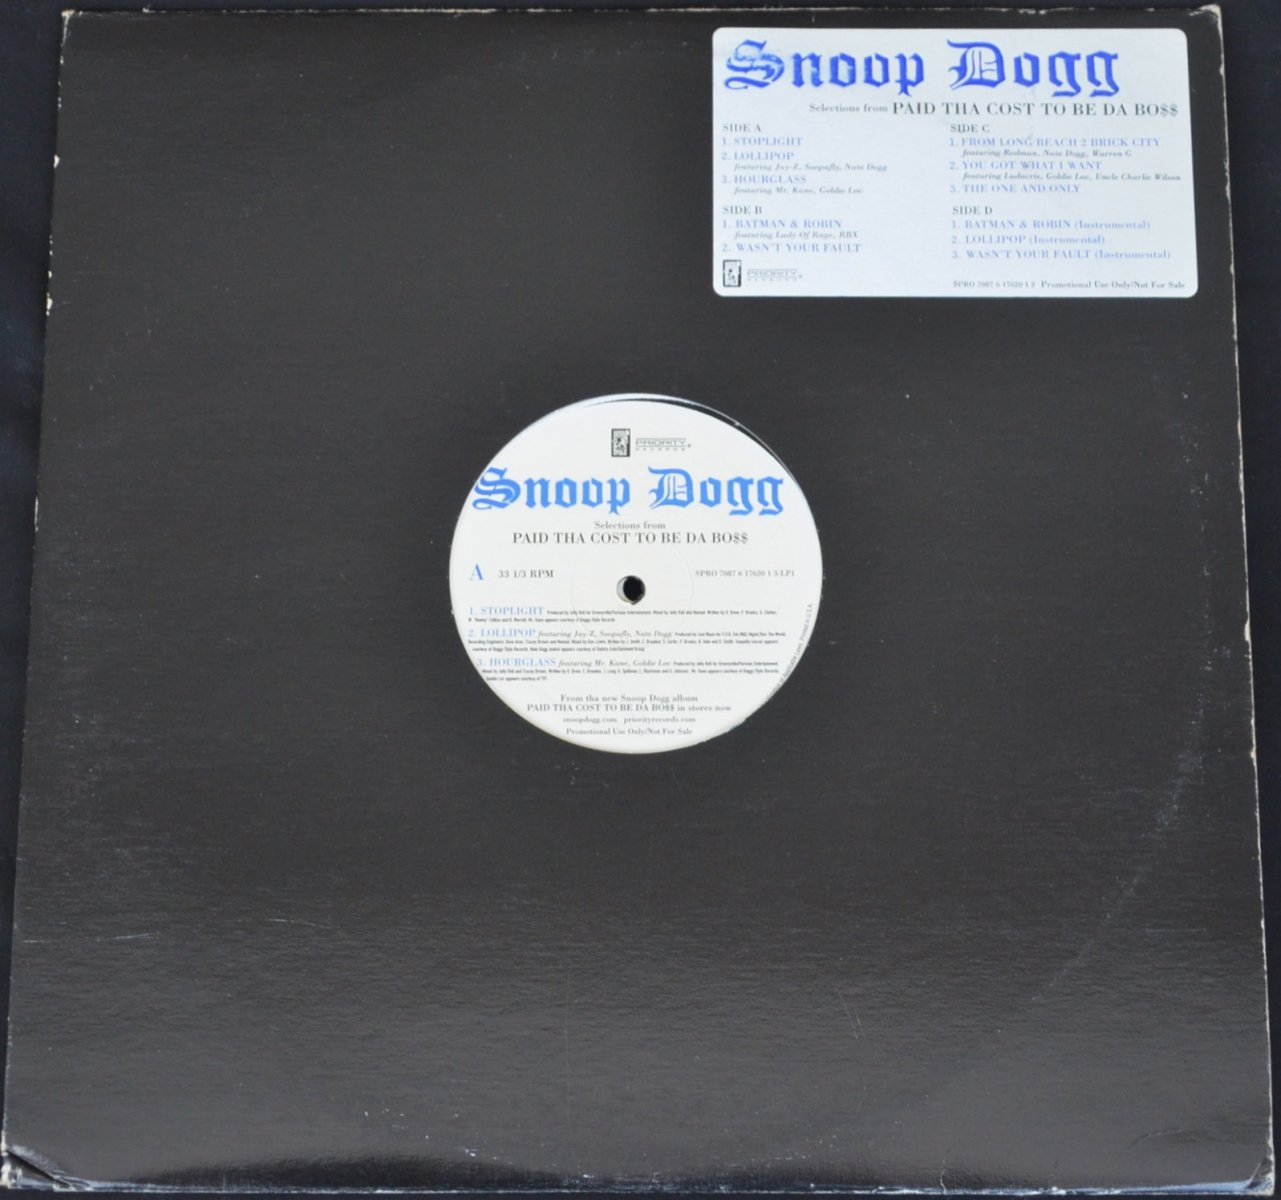 SNOOP DOGG ‎/ SELECTIONS FROM PAID THA COST TO BE DA BO$$ - PROMO LP SAMPLER (2LP)